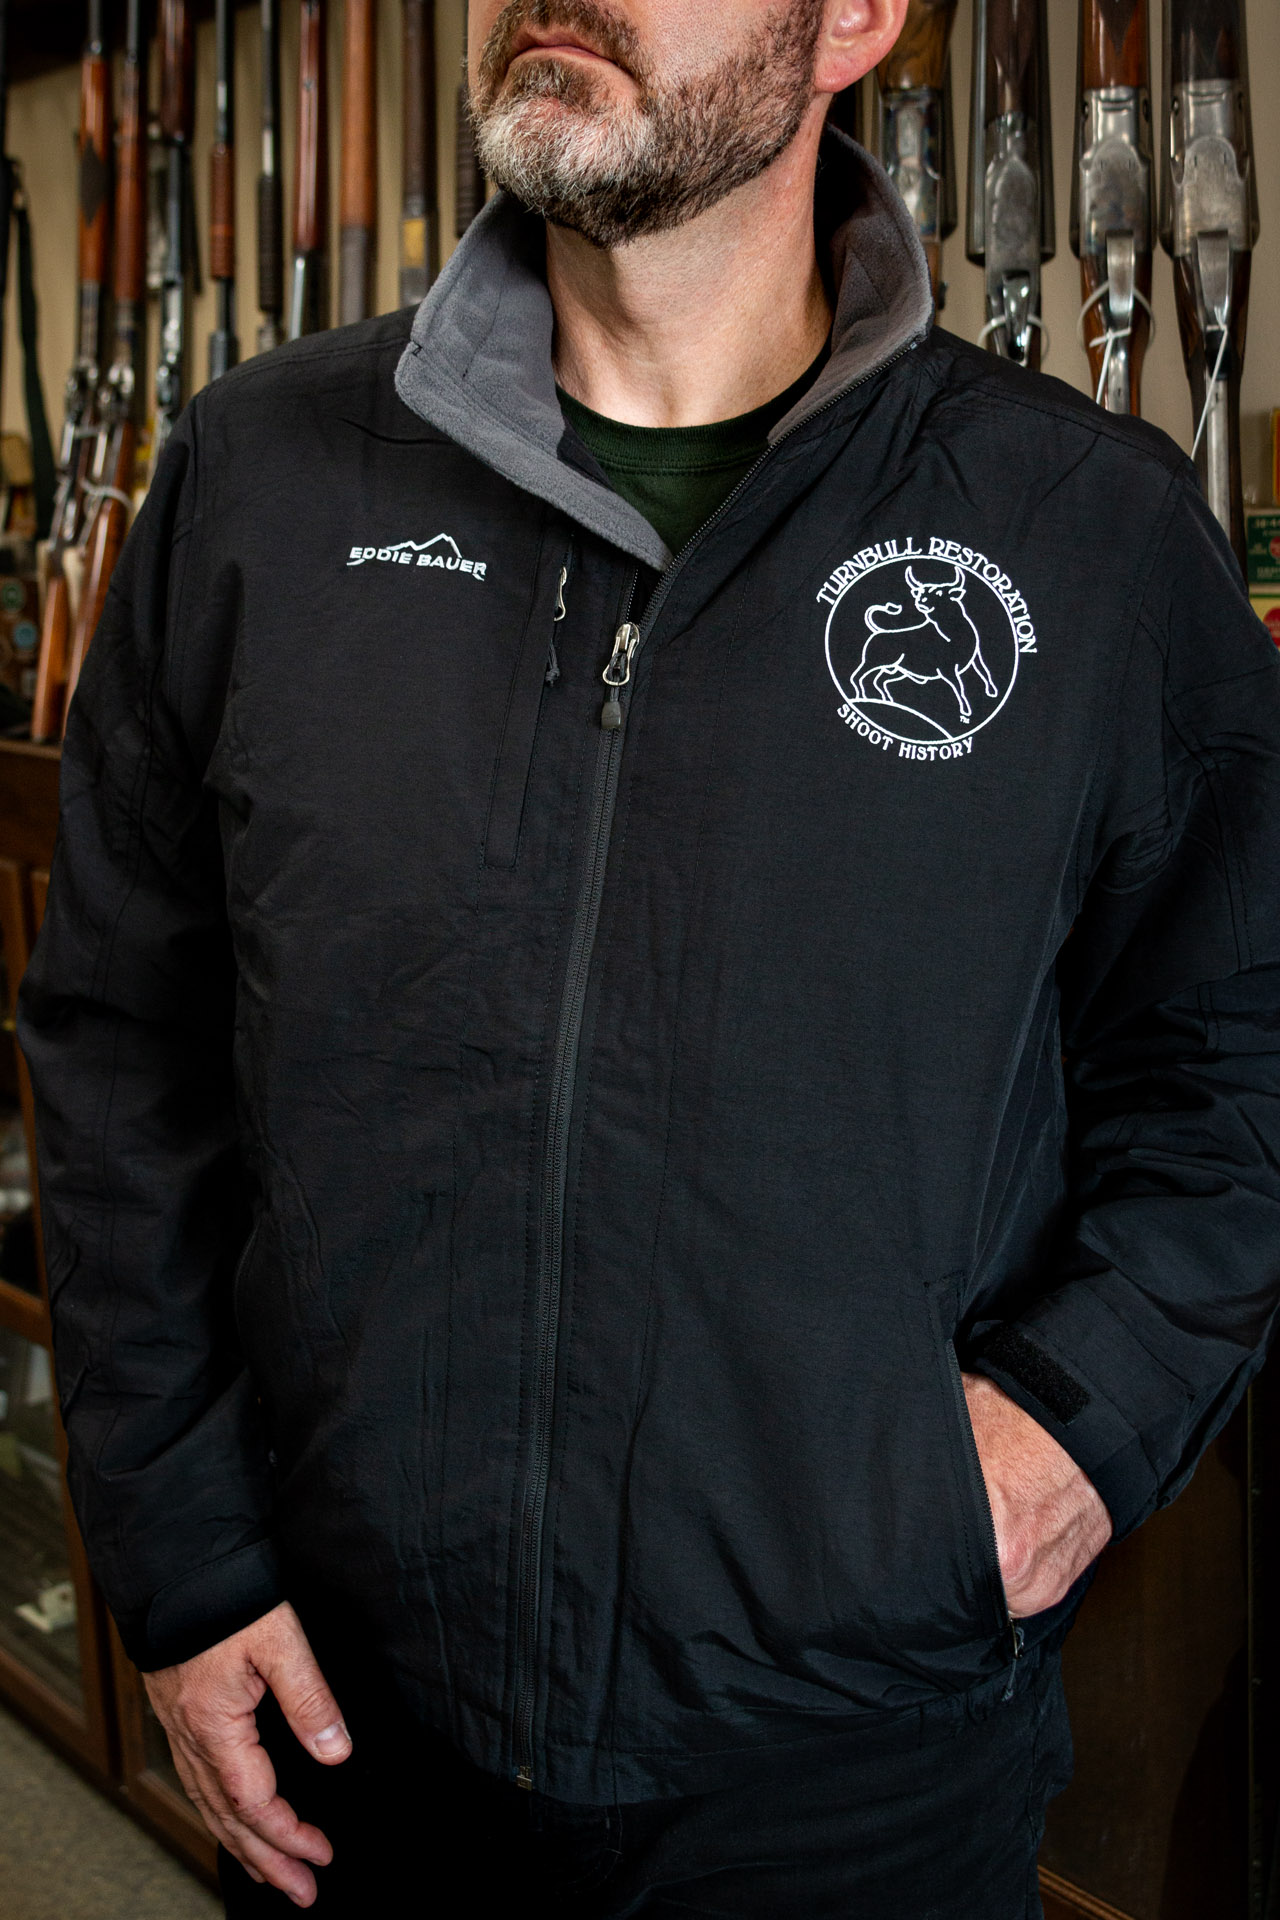 Photo of a Turnbull Restoration insulated jacket